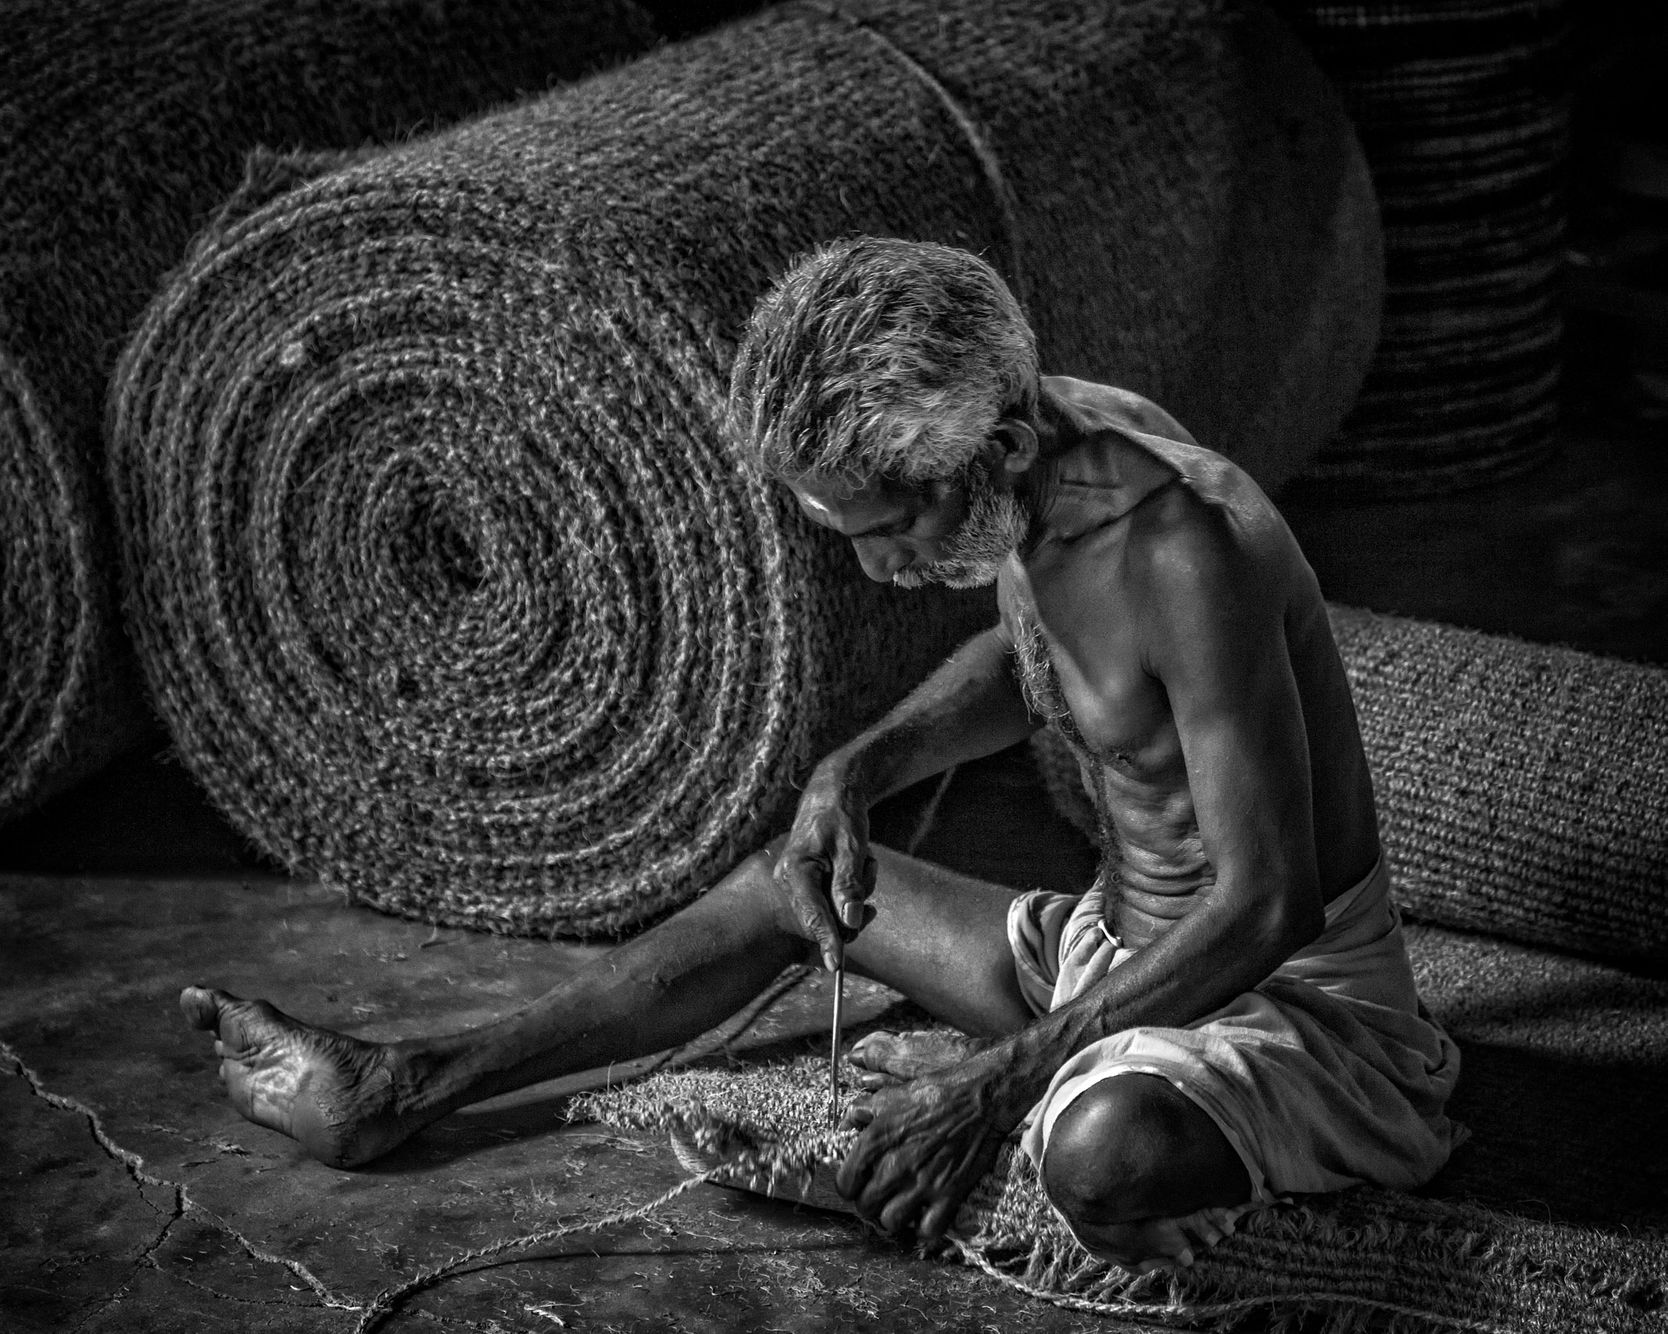 INDIANS AT WORK III:  Leather and Textile Workers